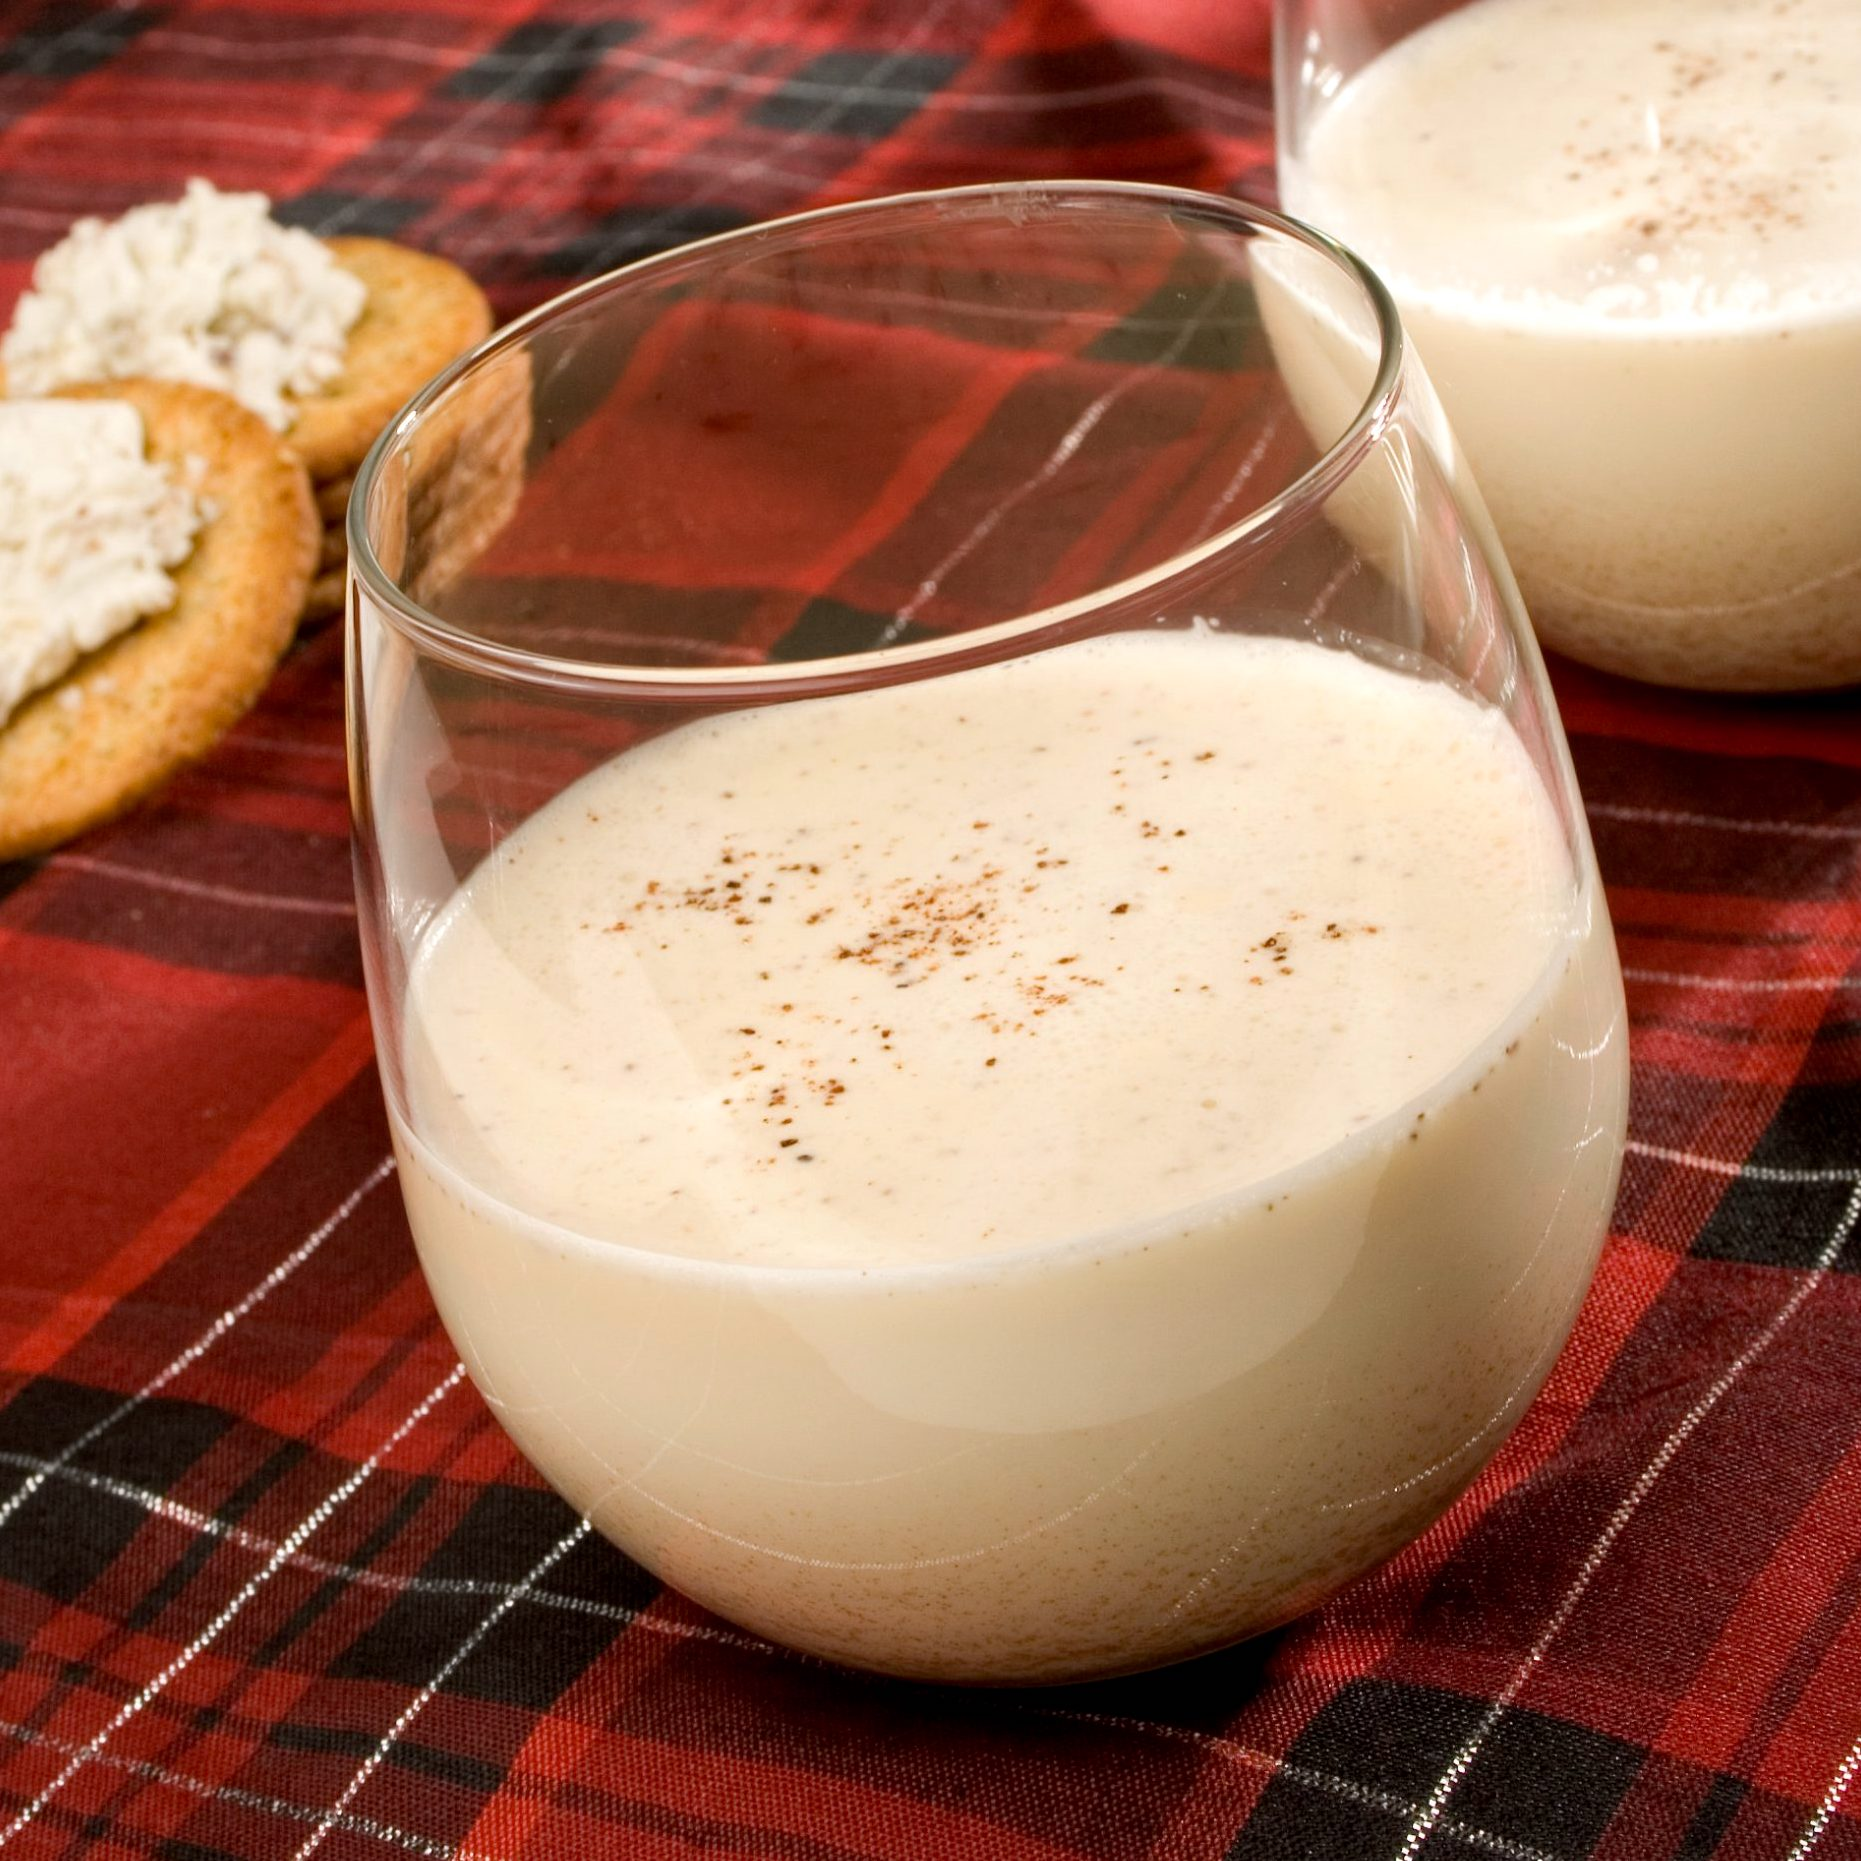 two glasses of eggnog on a red plaid tablecloth